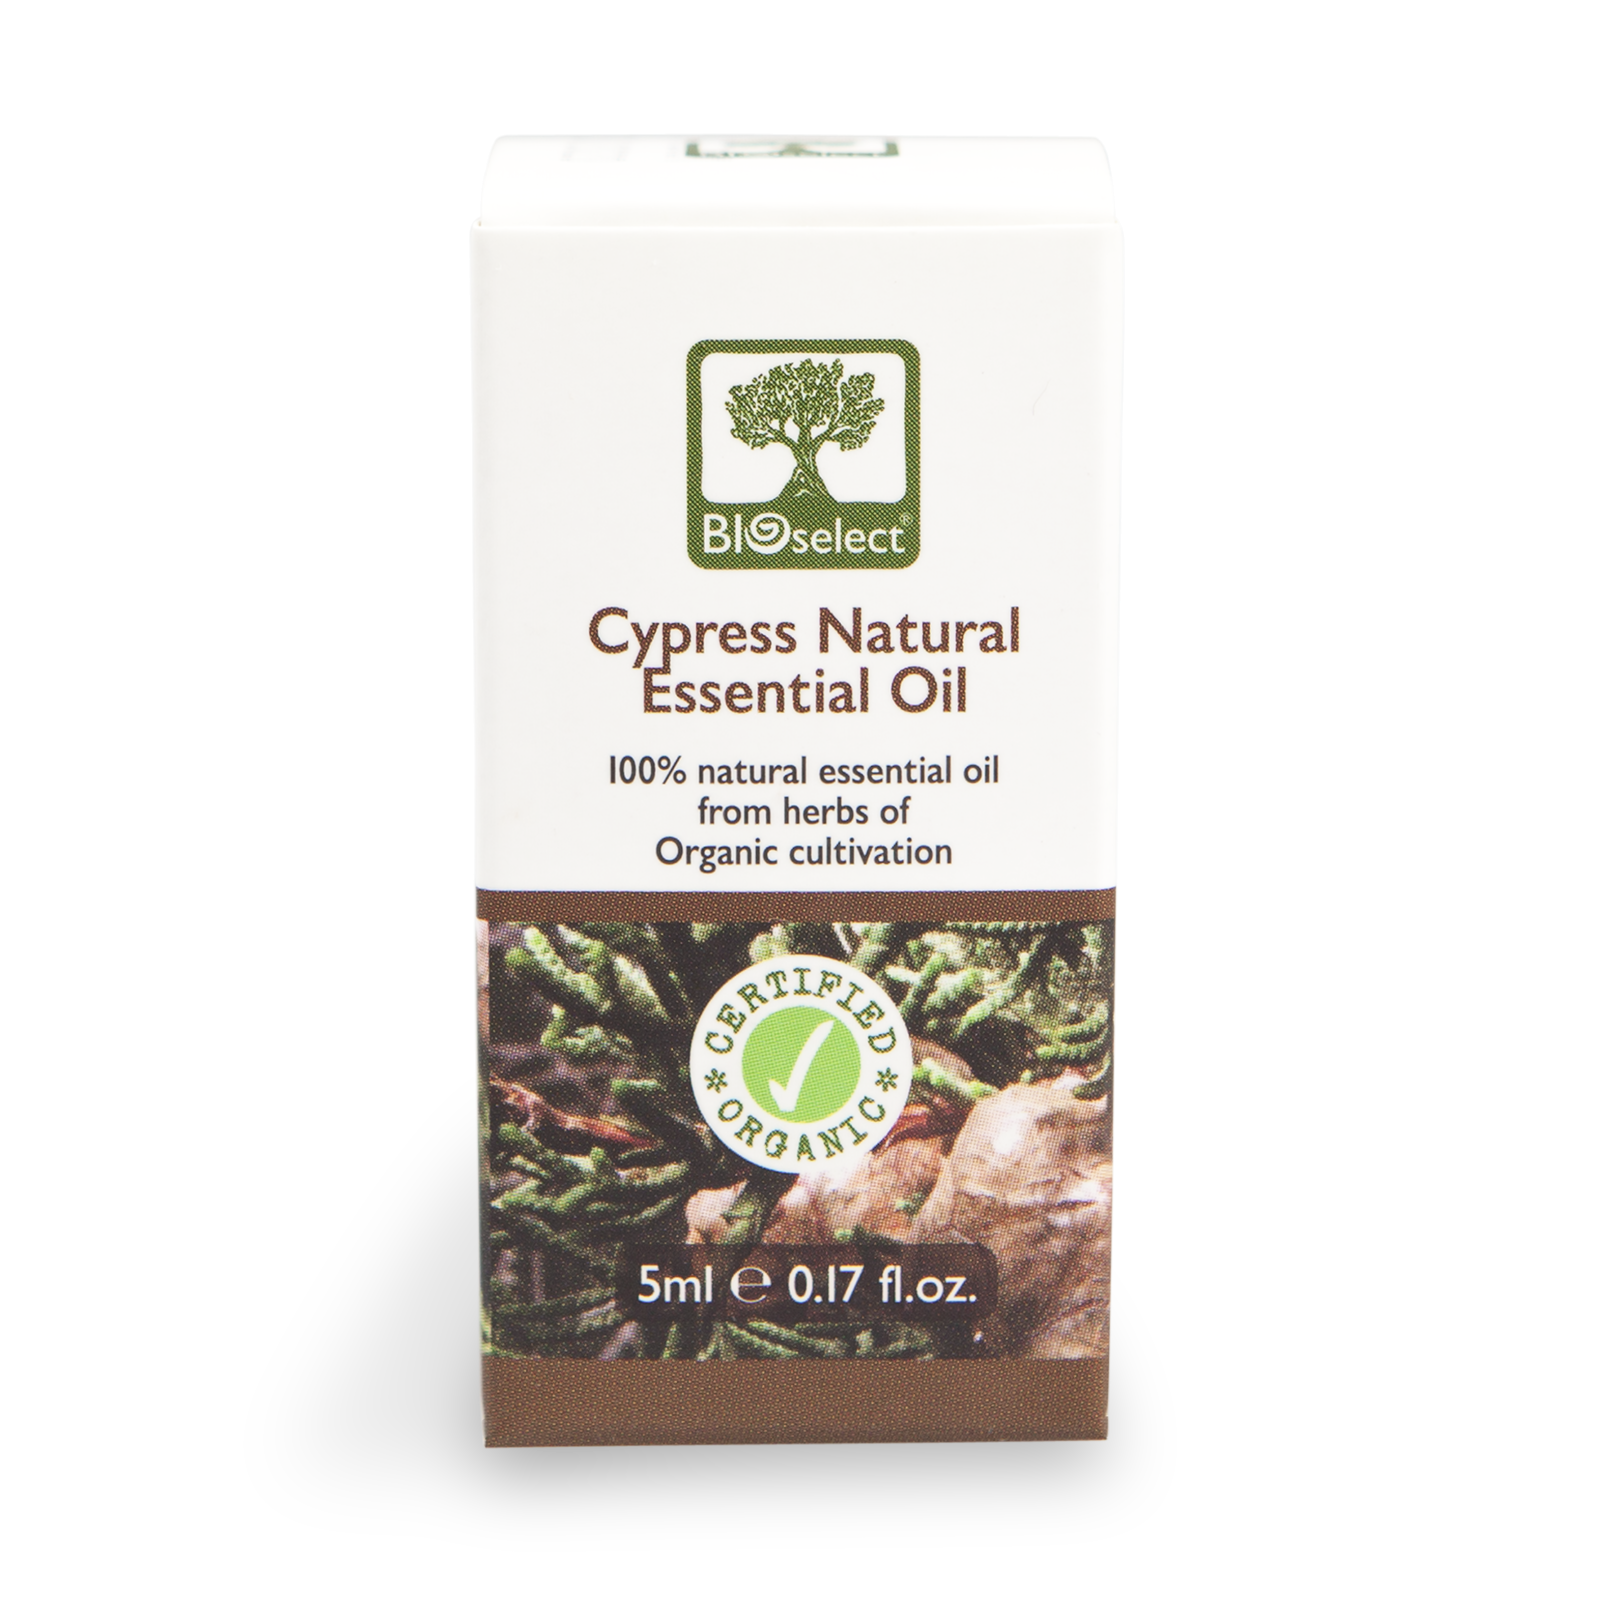 Bioselect Cypress Natural Essential Oil Certified Organic